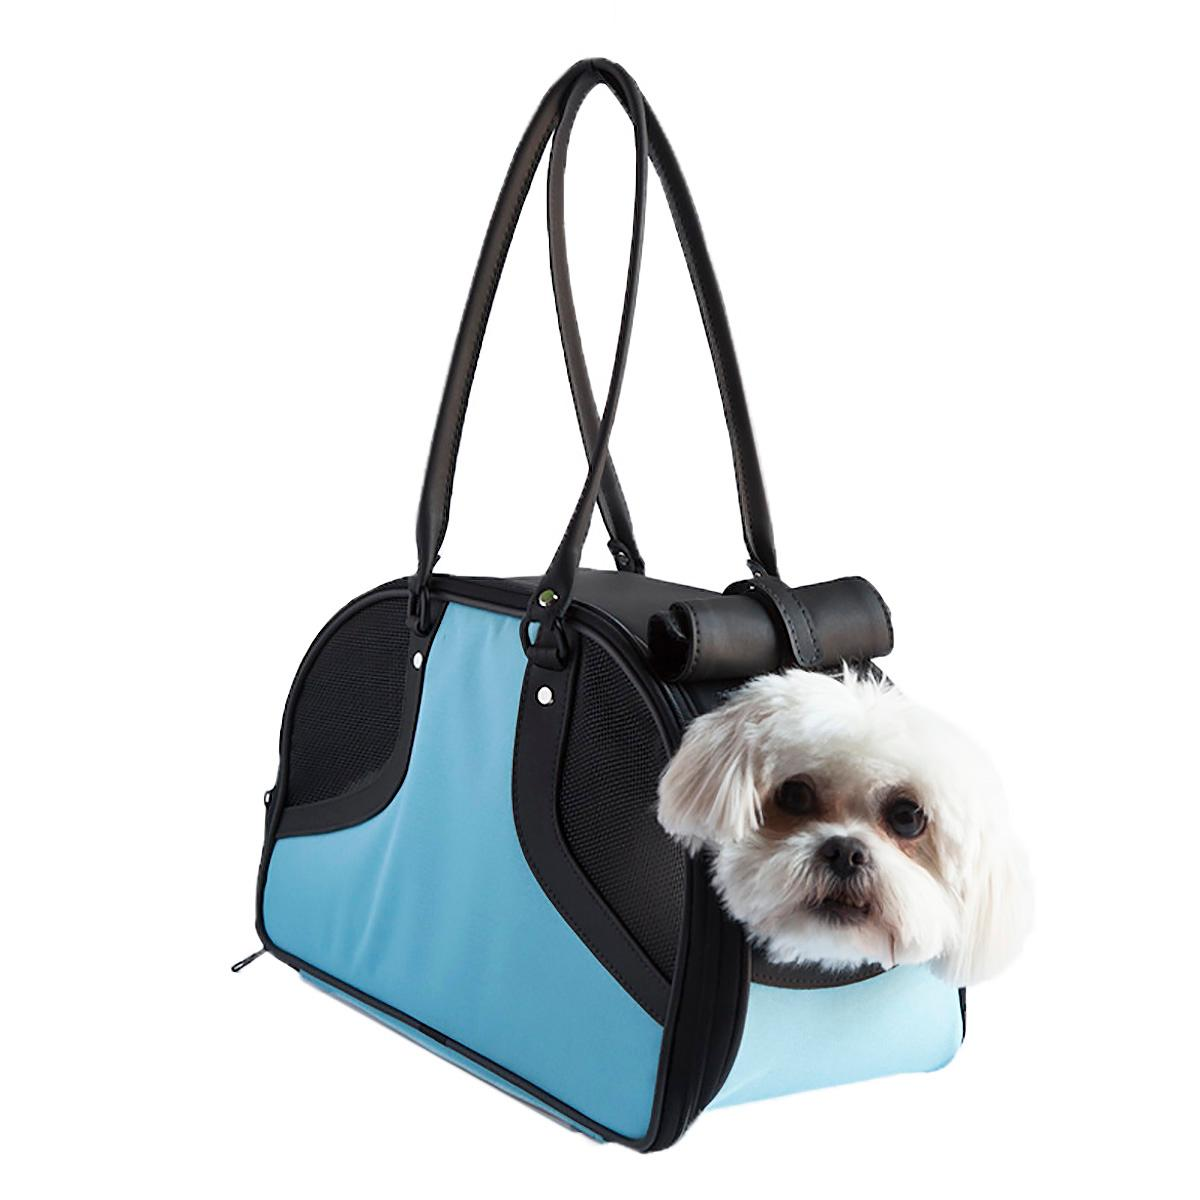 Petote Roxy Dog Carrier Handbag - Turquoise & Black